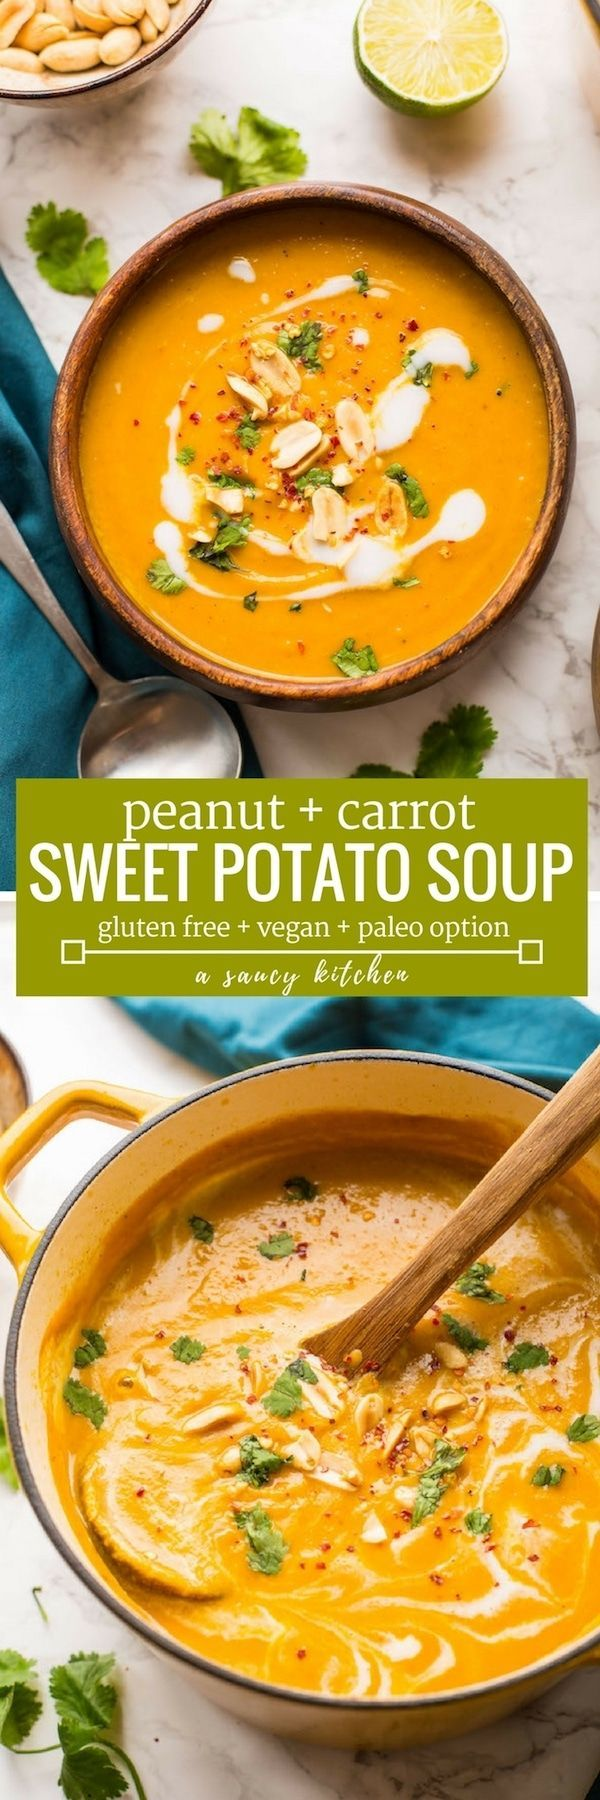 Thick, velvety, healthy and warming - just a few ways to describe thisPeanut Carrot & Sweet Potato Soup! | Gluten Free + Vegan + Grain Free + Paleo Option